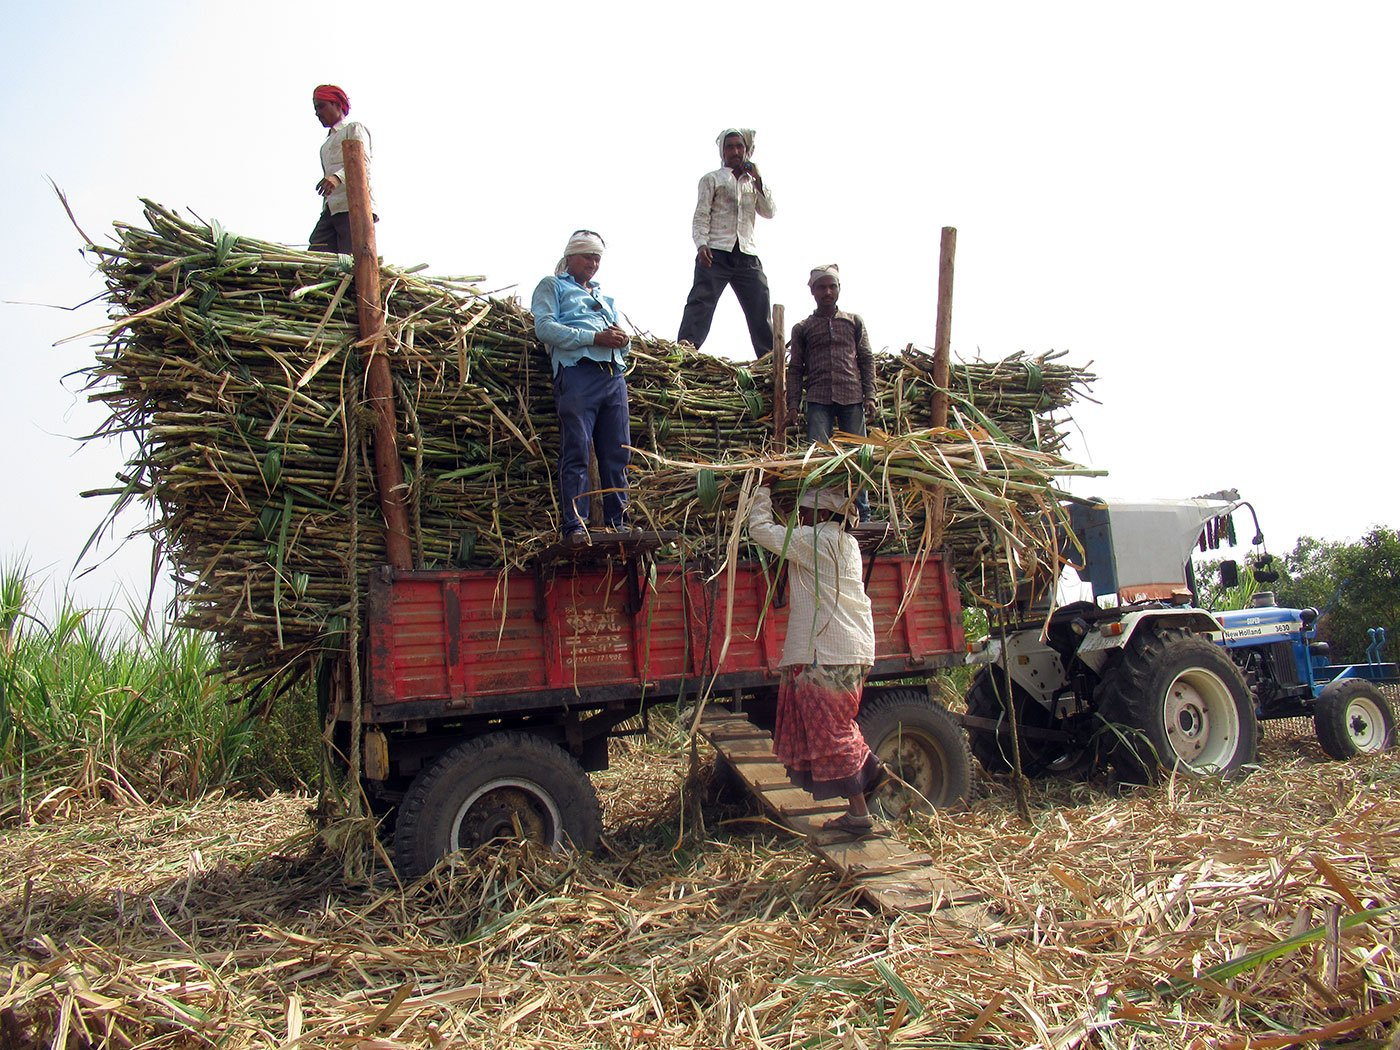 Woman carrying sugarcane on her head walking up a small ramp to load it onto the truck